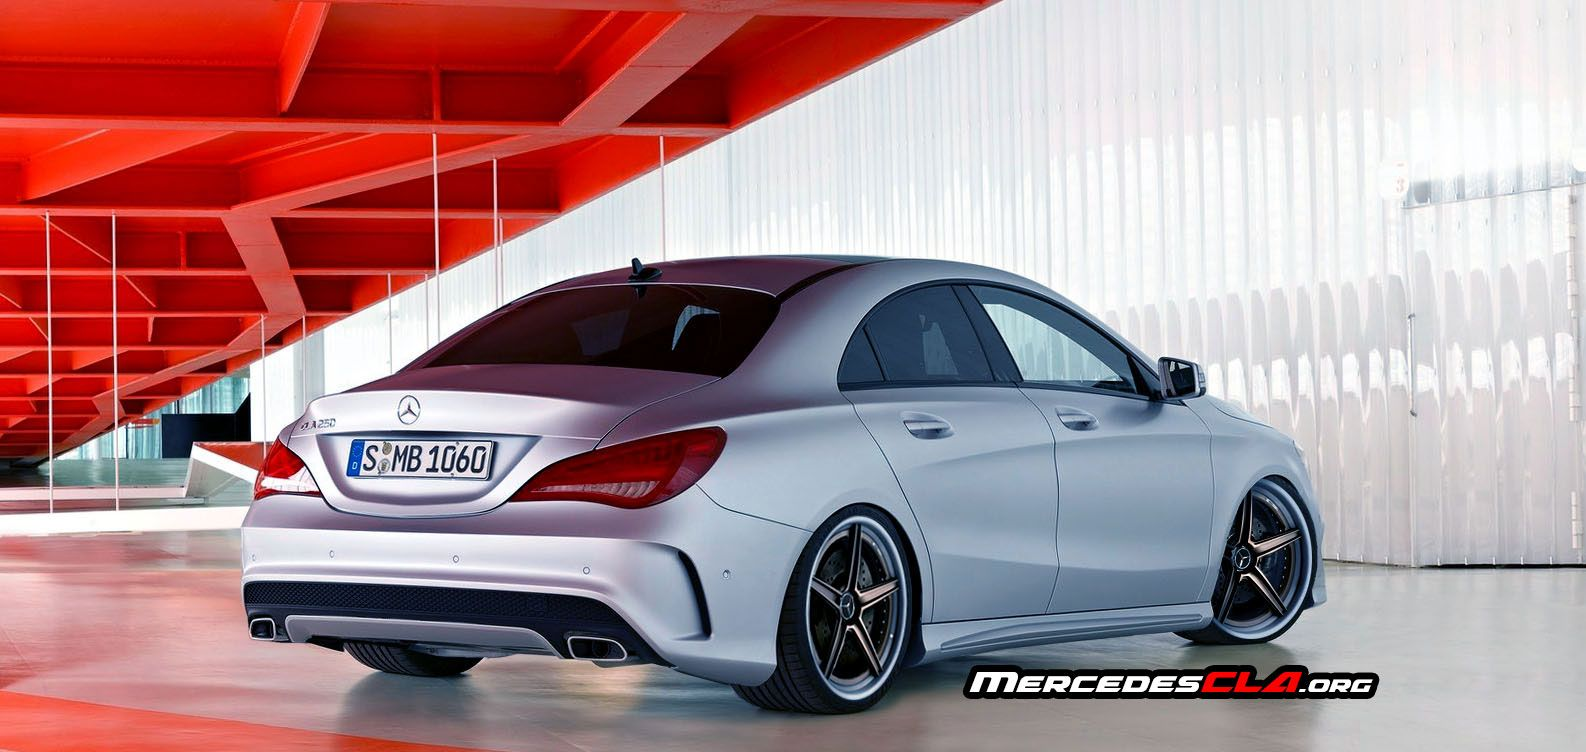 Photoshopped Mercedes Benz Cla Lowered Wheels 2 Tone And